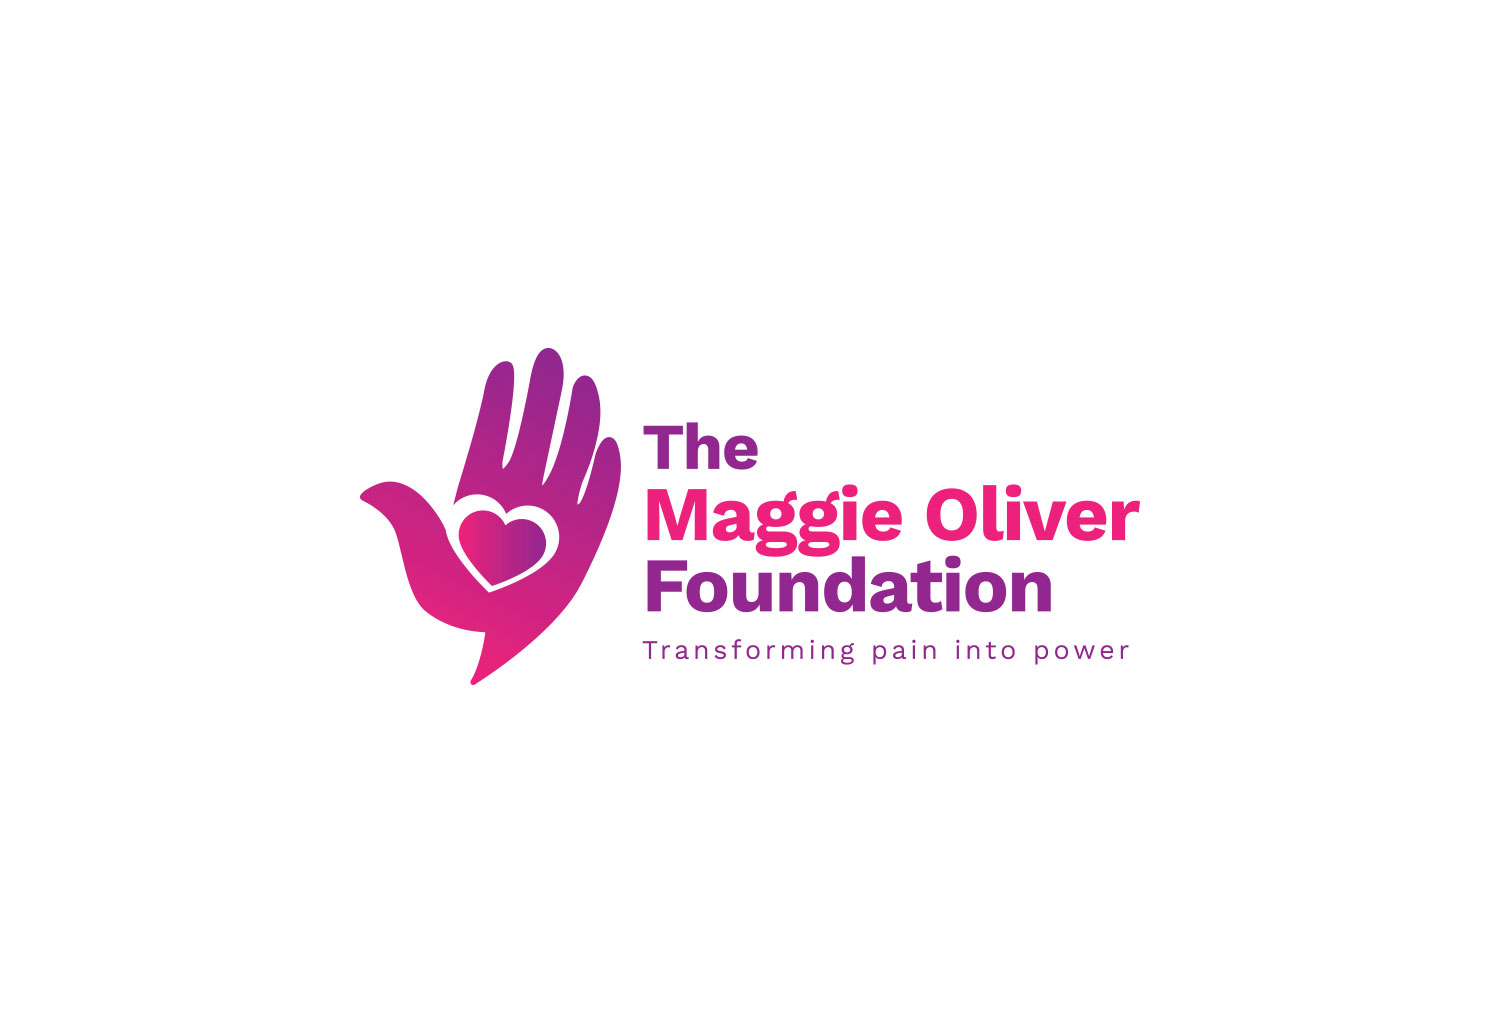 Maggie Oliver Foundation | Final Logo Design